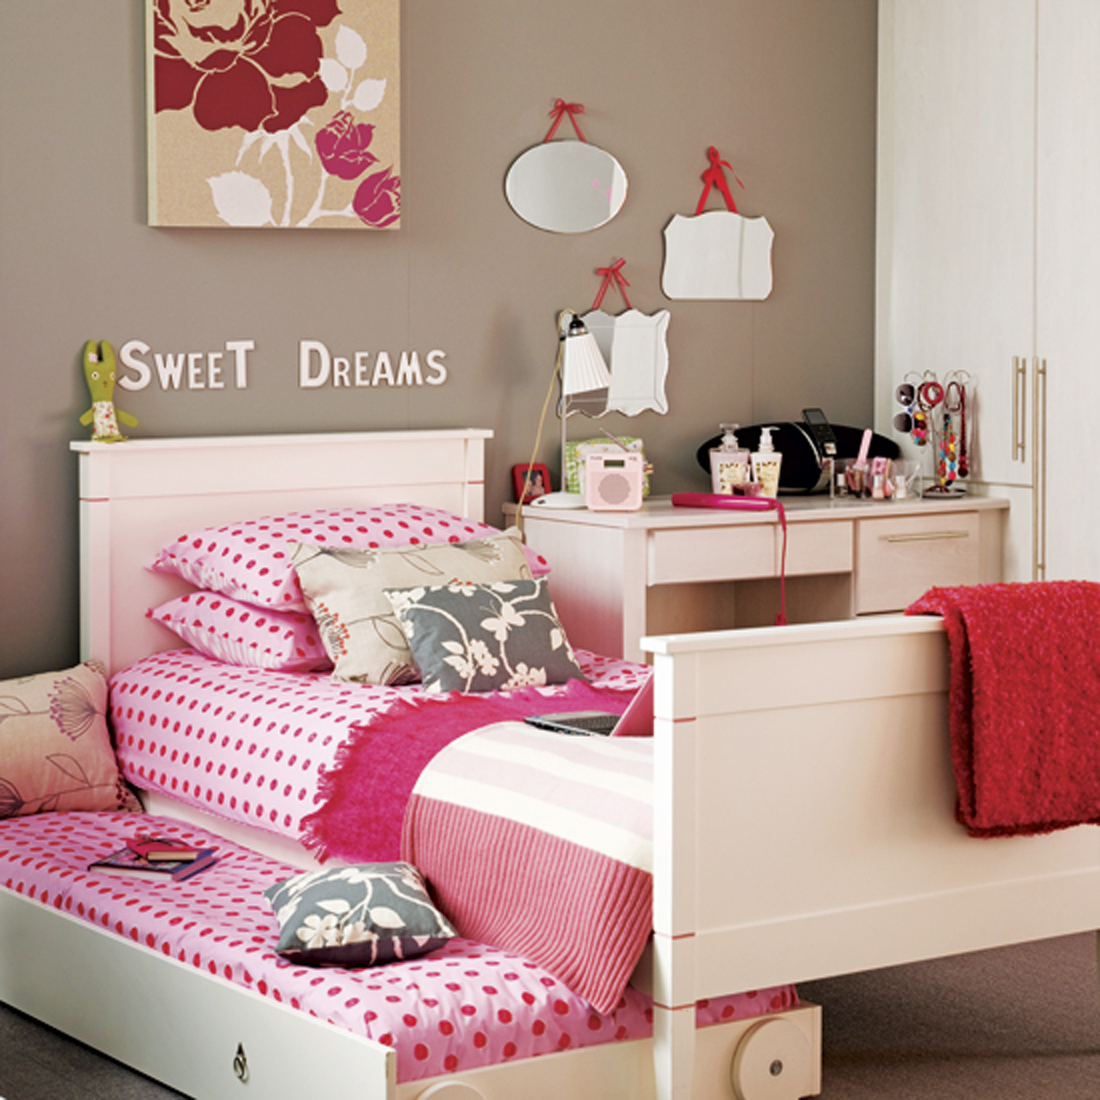 Fabulous Bedroom for Twin Girls Decoration Sets and Furniture